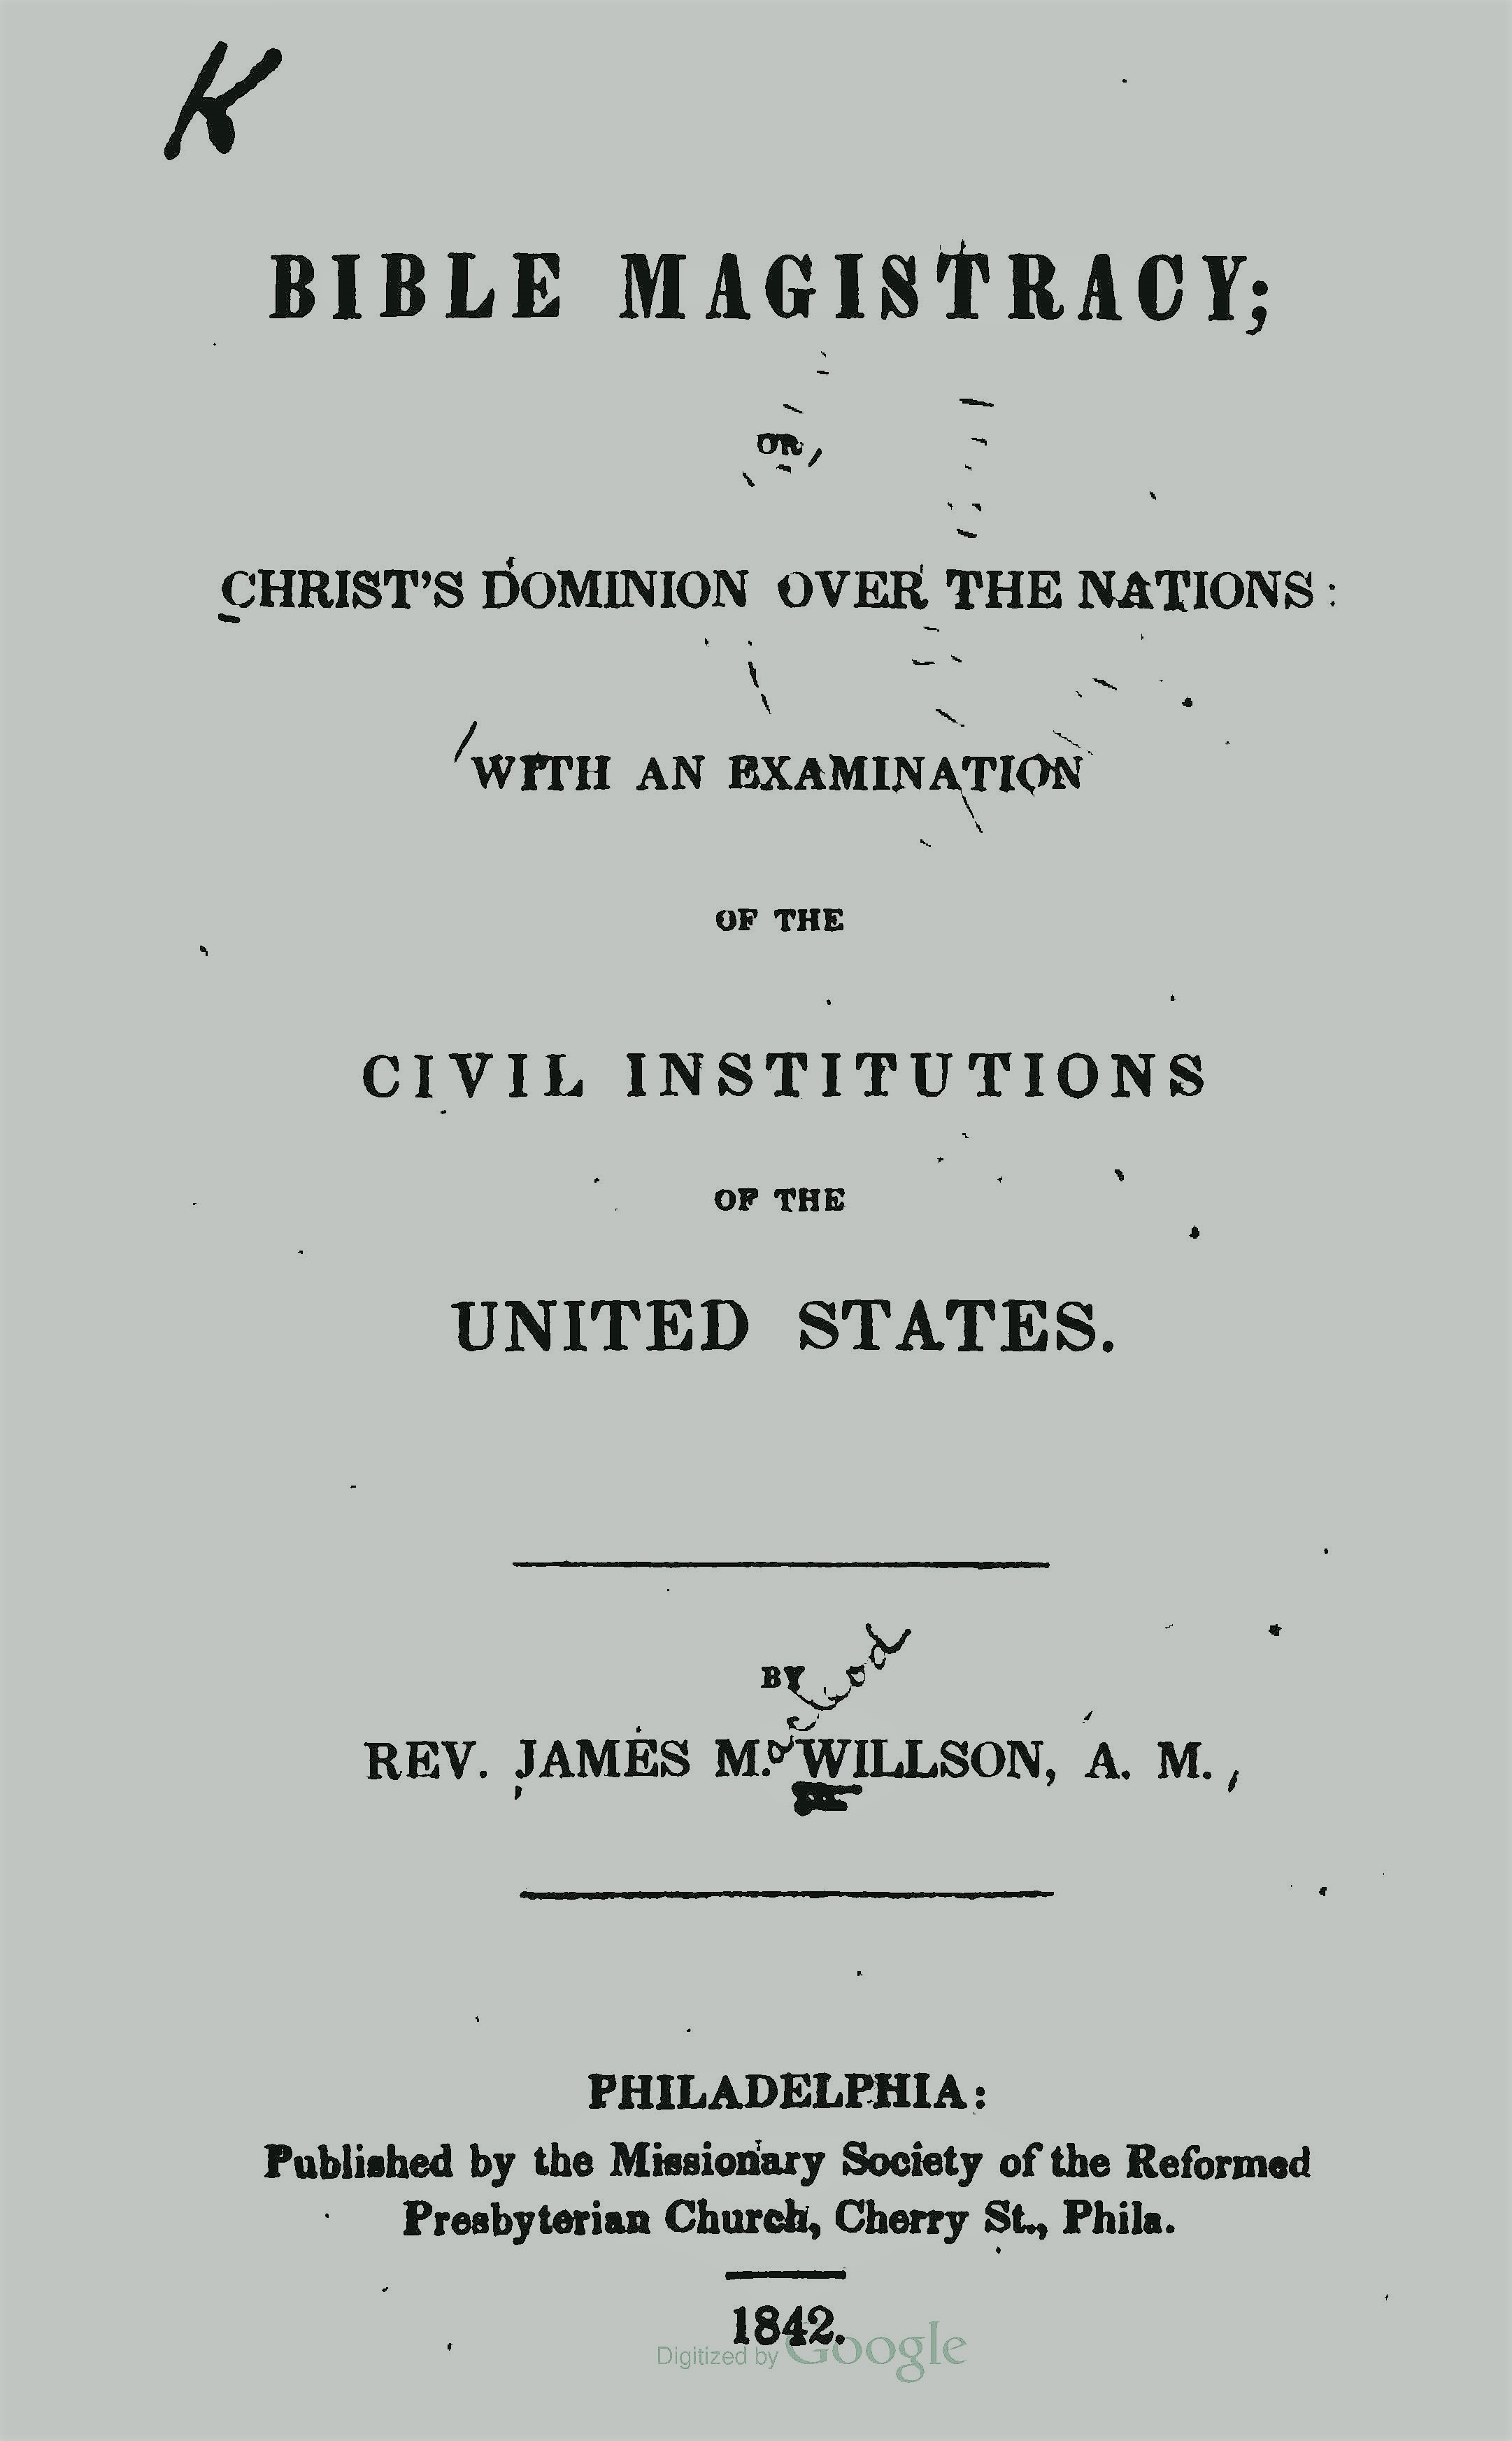 Willson, James McLeod, Bible Magistracy Title Page.jpg